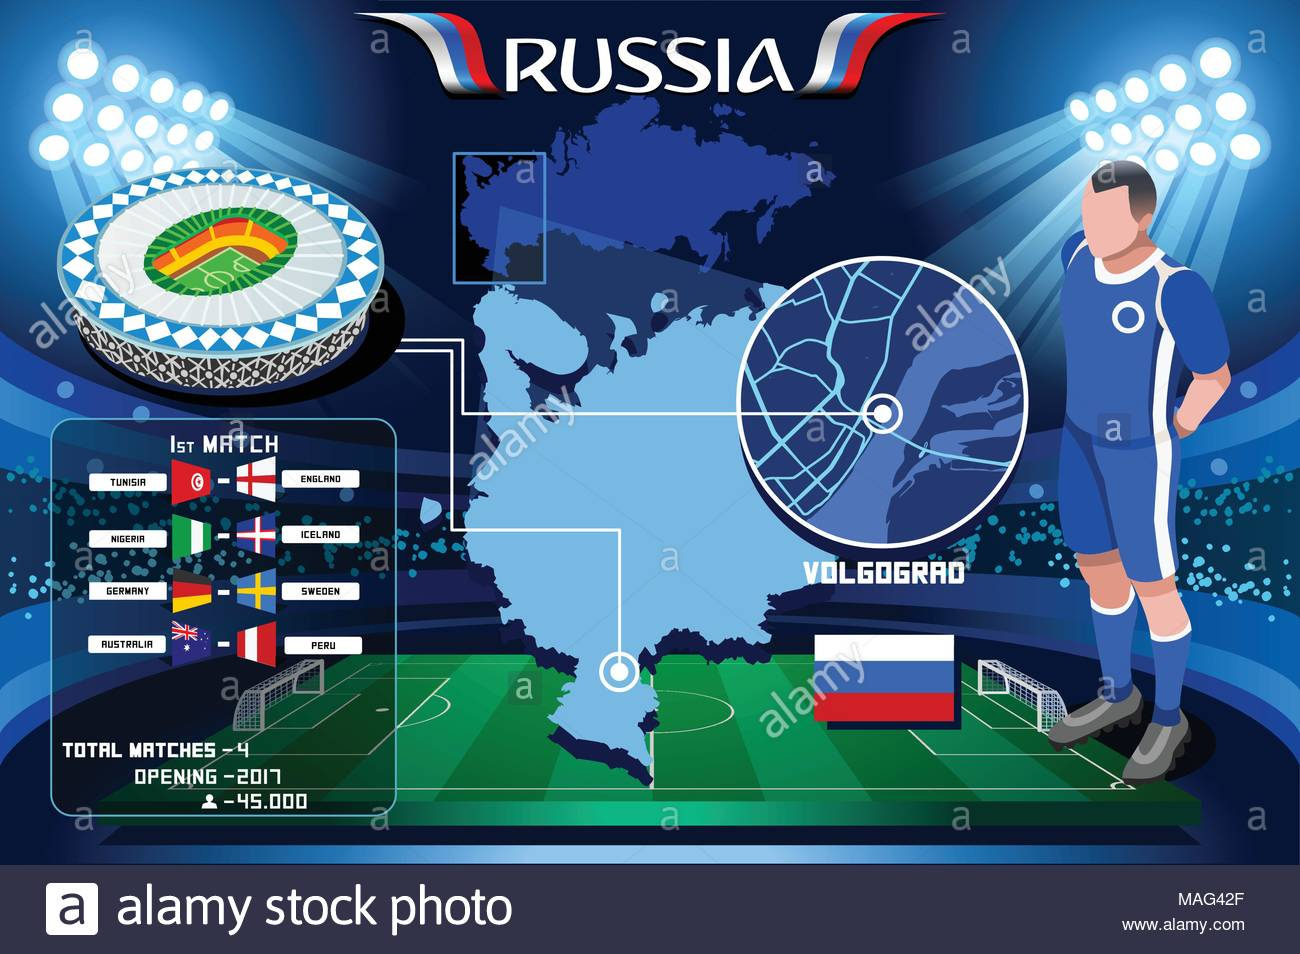 Beautiful Club World Cup 2018 - russia-world-cup-2018-volgograd-arena-football-stadium-infographic-soccer-opening-championship-player-russian-rotor-club-jersey-MAG42F  2018_1007736 .jpg